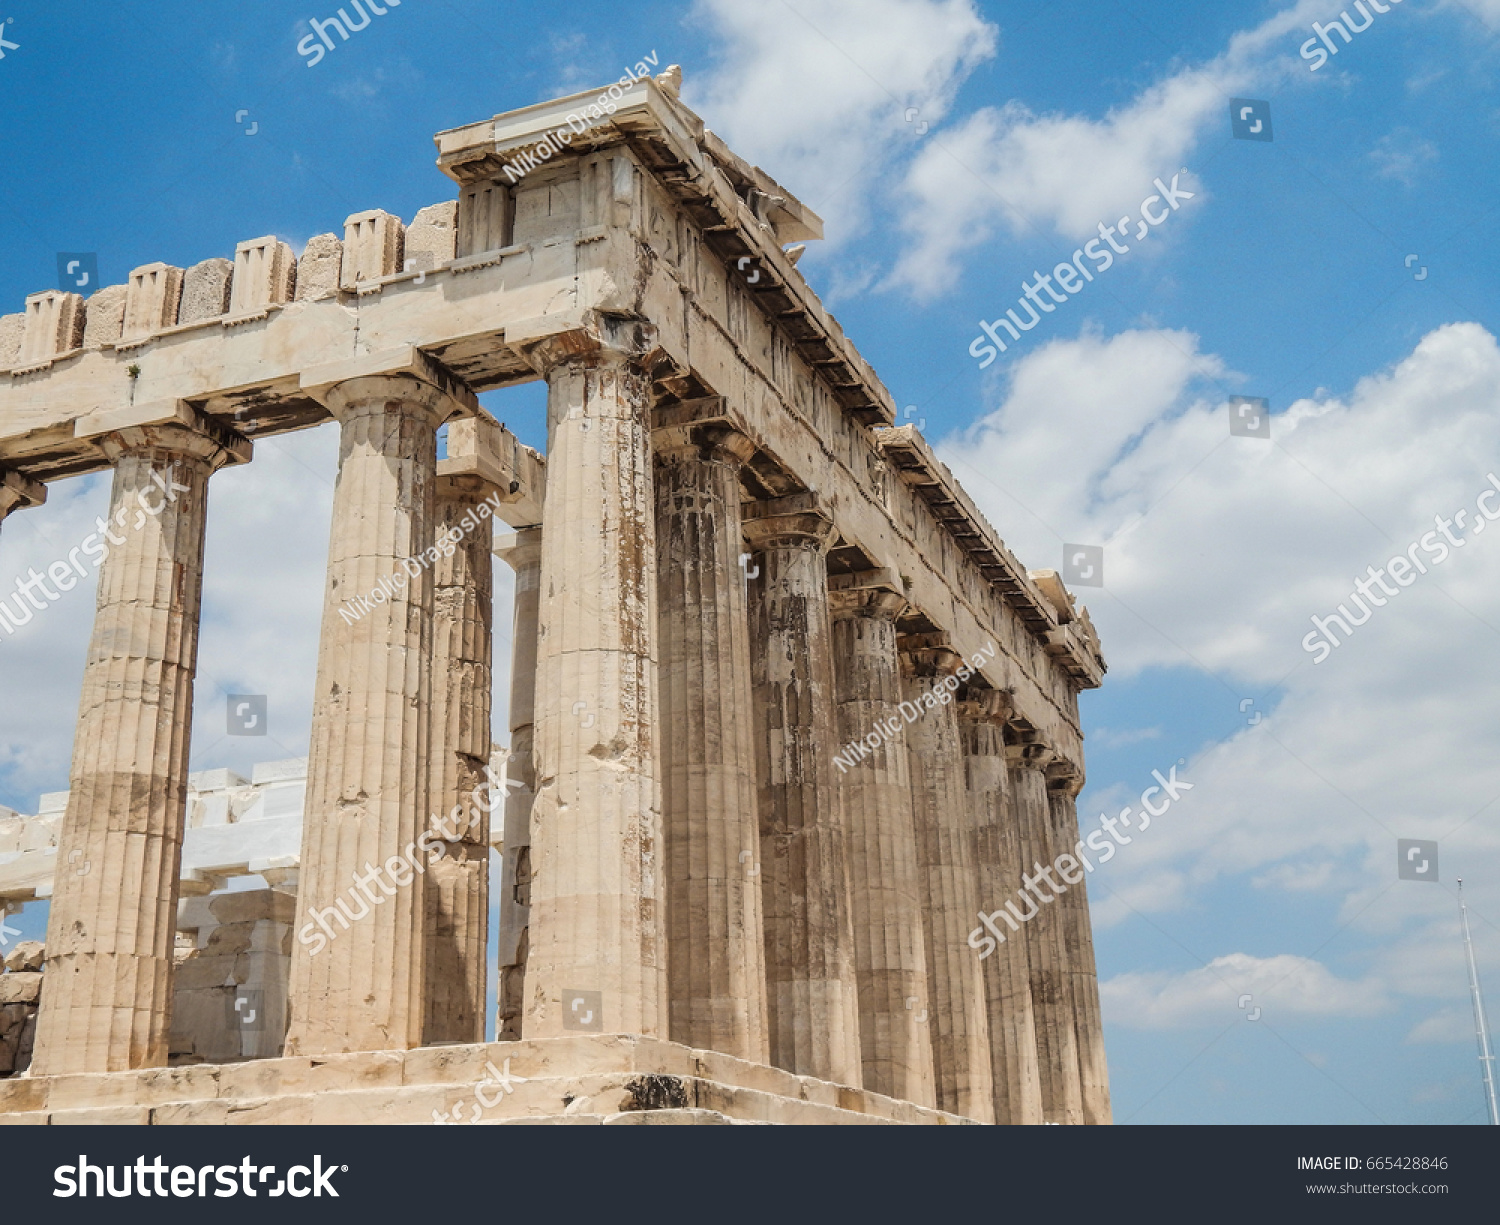 Athens Greece June 26 2014 Antique Architectural And Historical